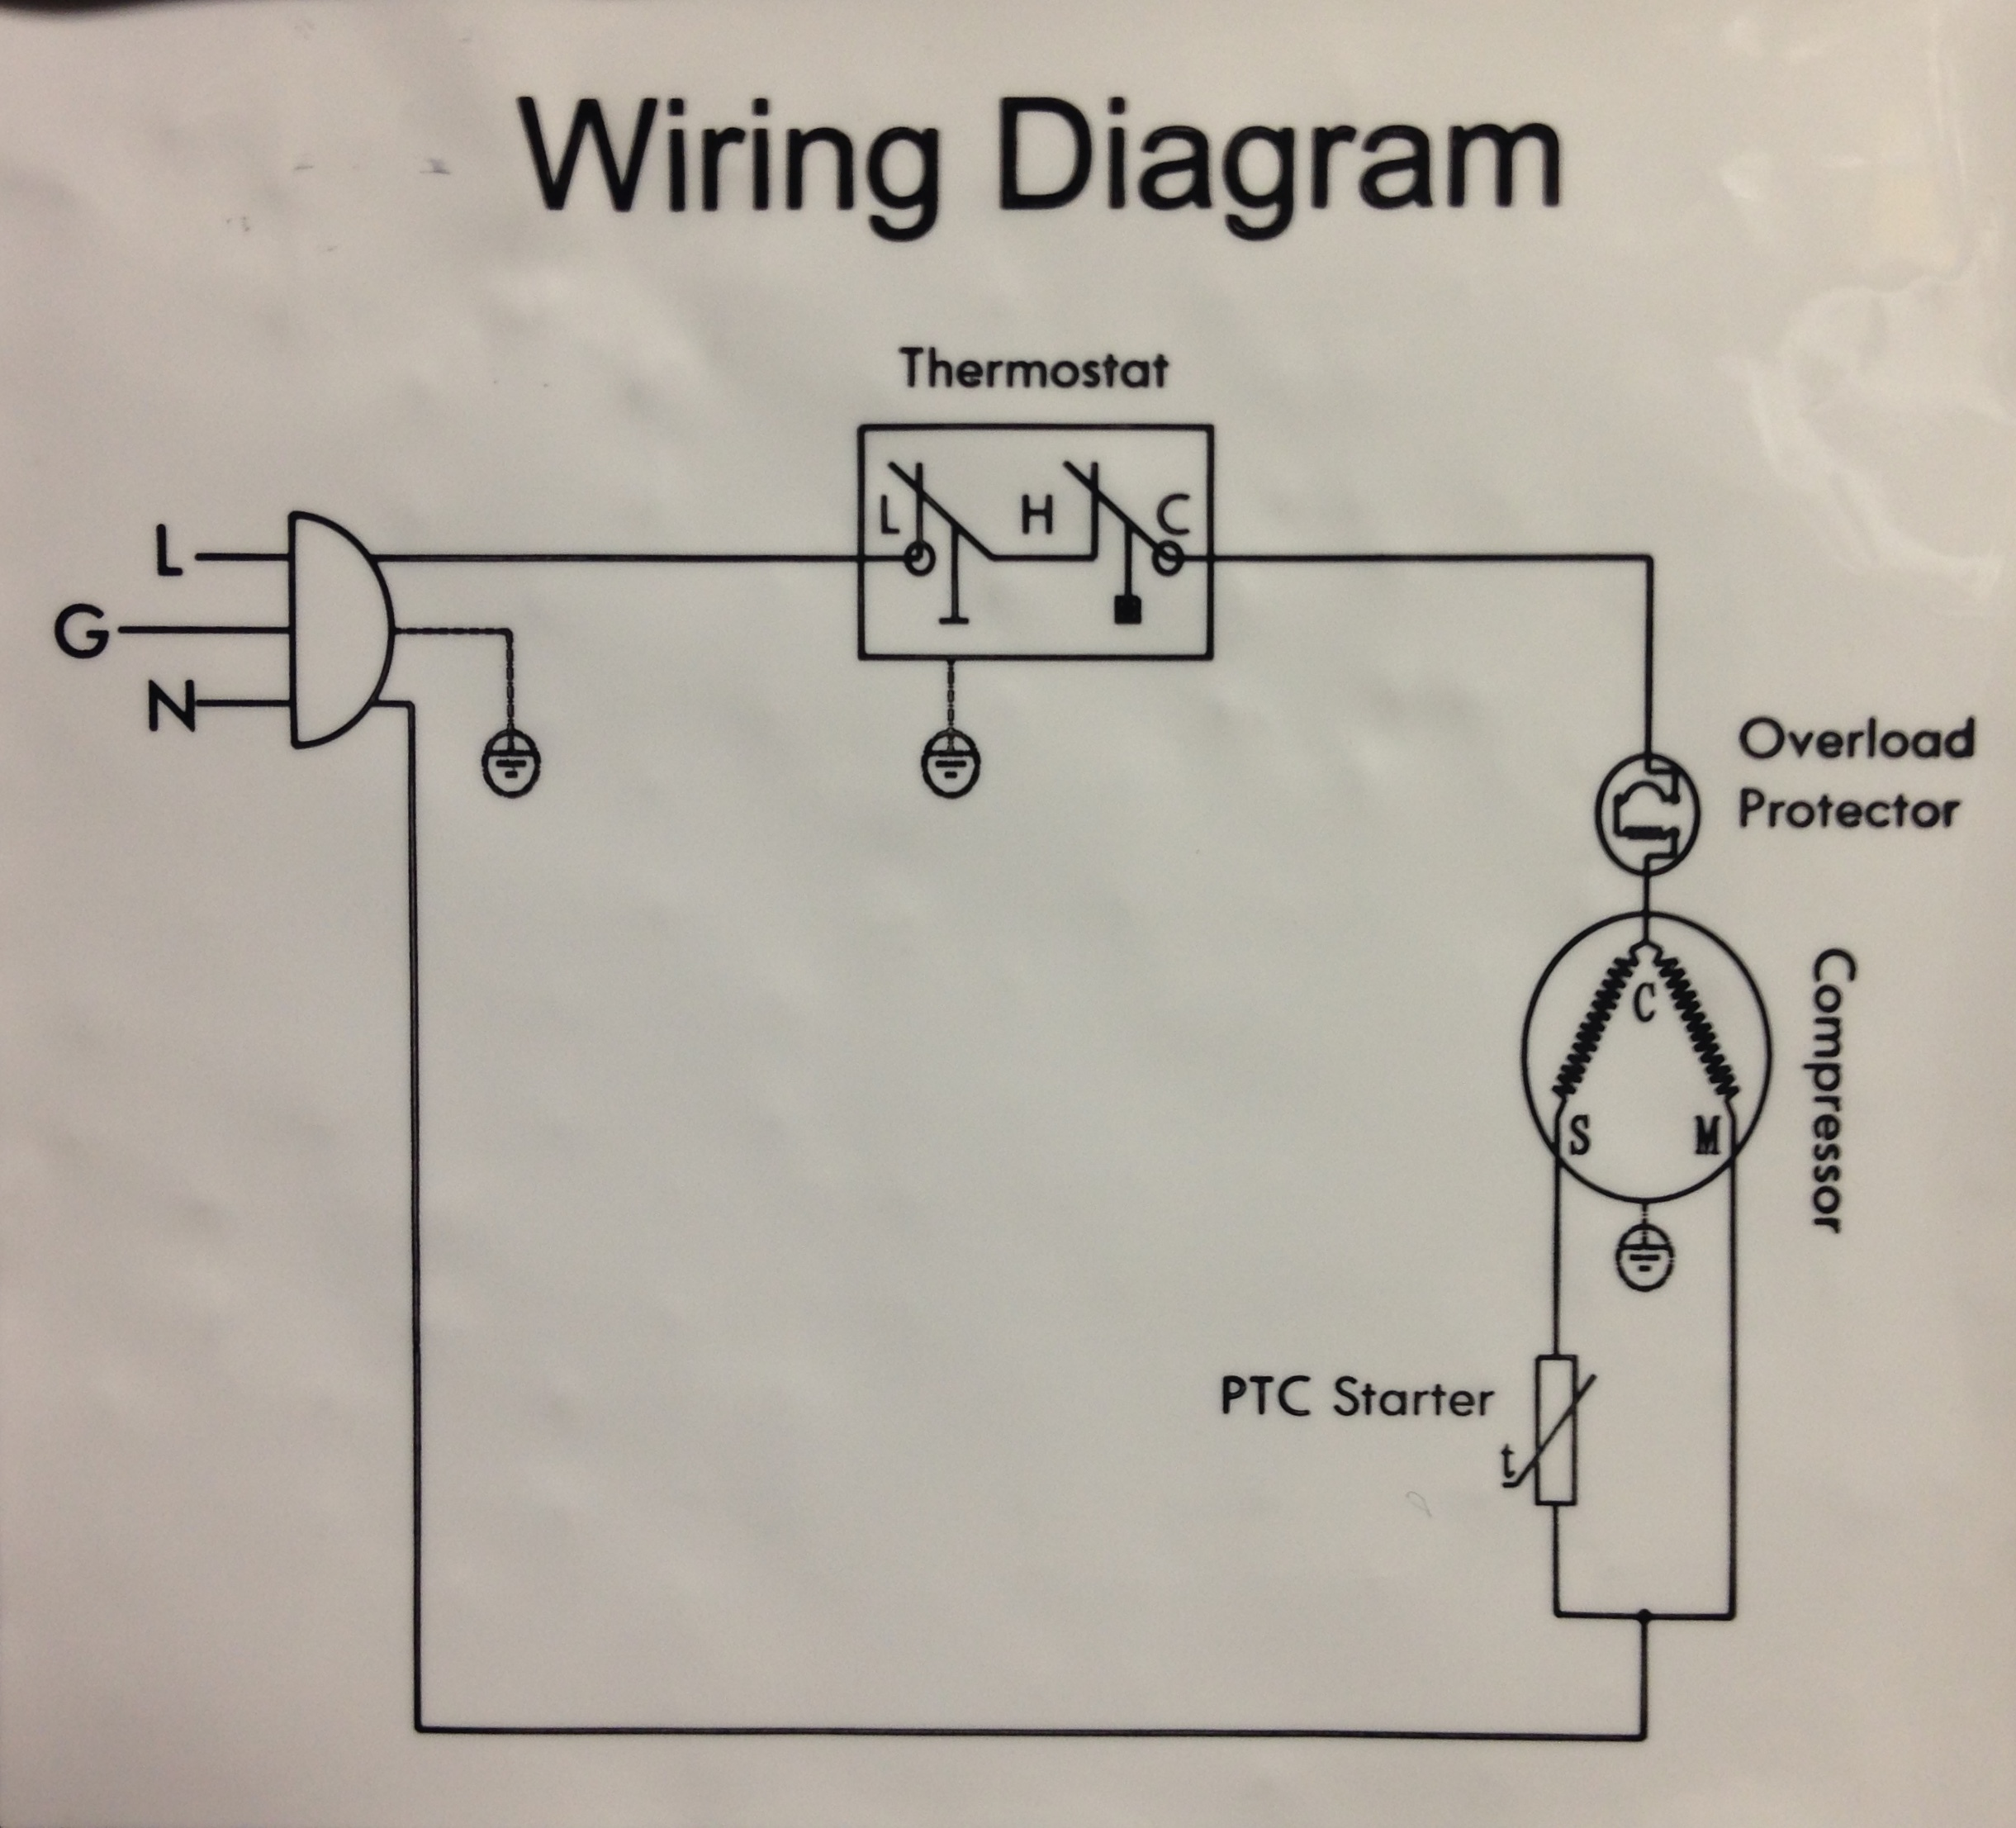 DIAGRAM] Ge Refrigerator Overload Relay Wiring Diagram FULL Version HD  Quality Wiring Diagram - PLAGUEDIAGRAM.UNBRANOCONTROLEMAFIE.IT | Refrigerator Relay Wiring Diagram |  | unbranocontrolemafie.it